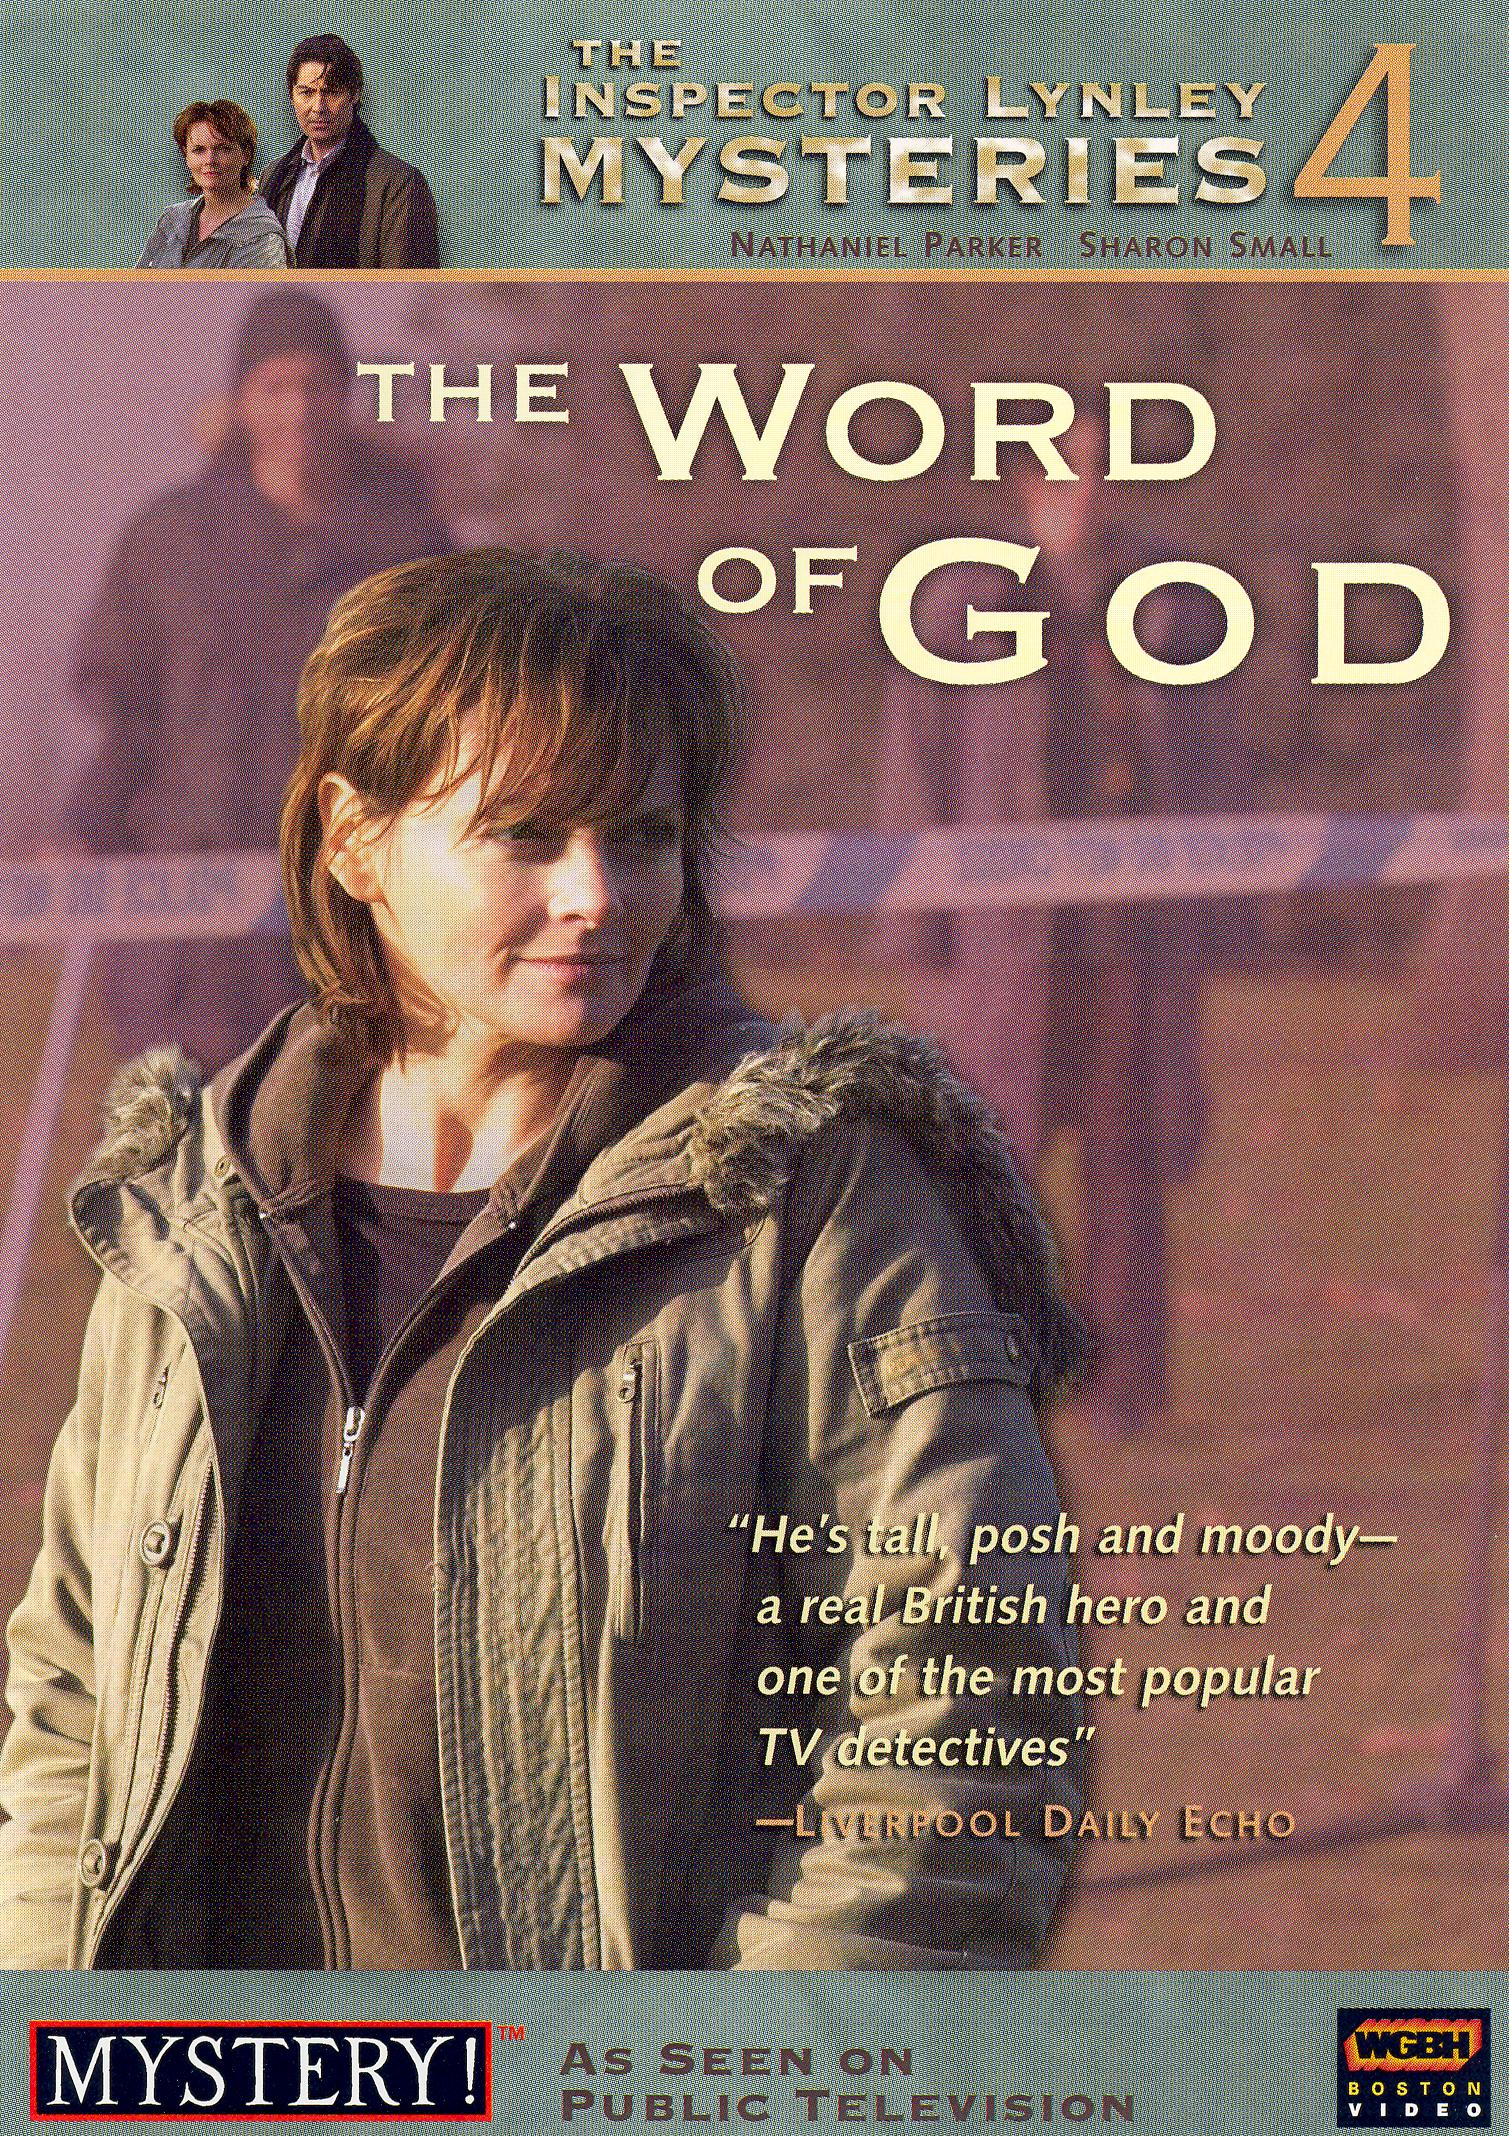 The Inspector Lynley Mysteries: The Word of God